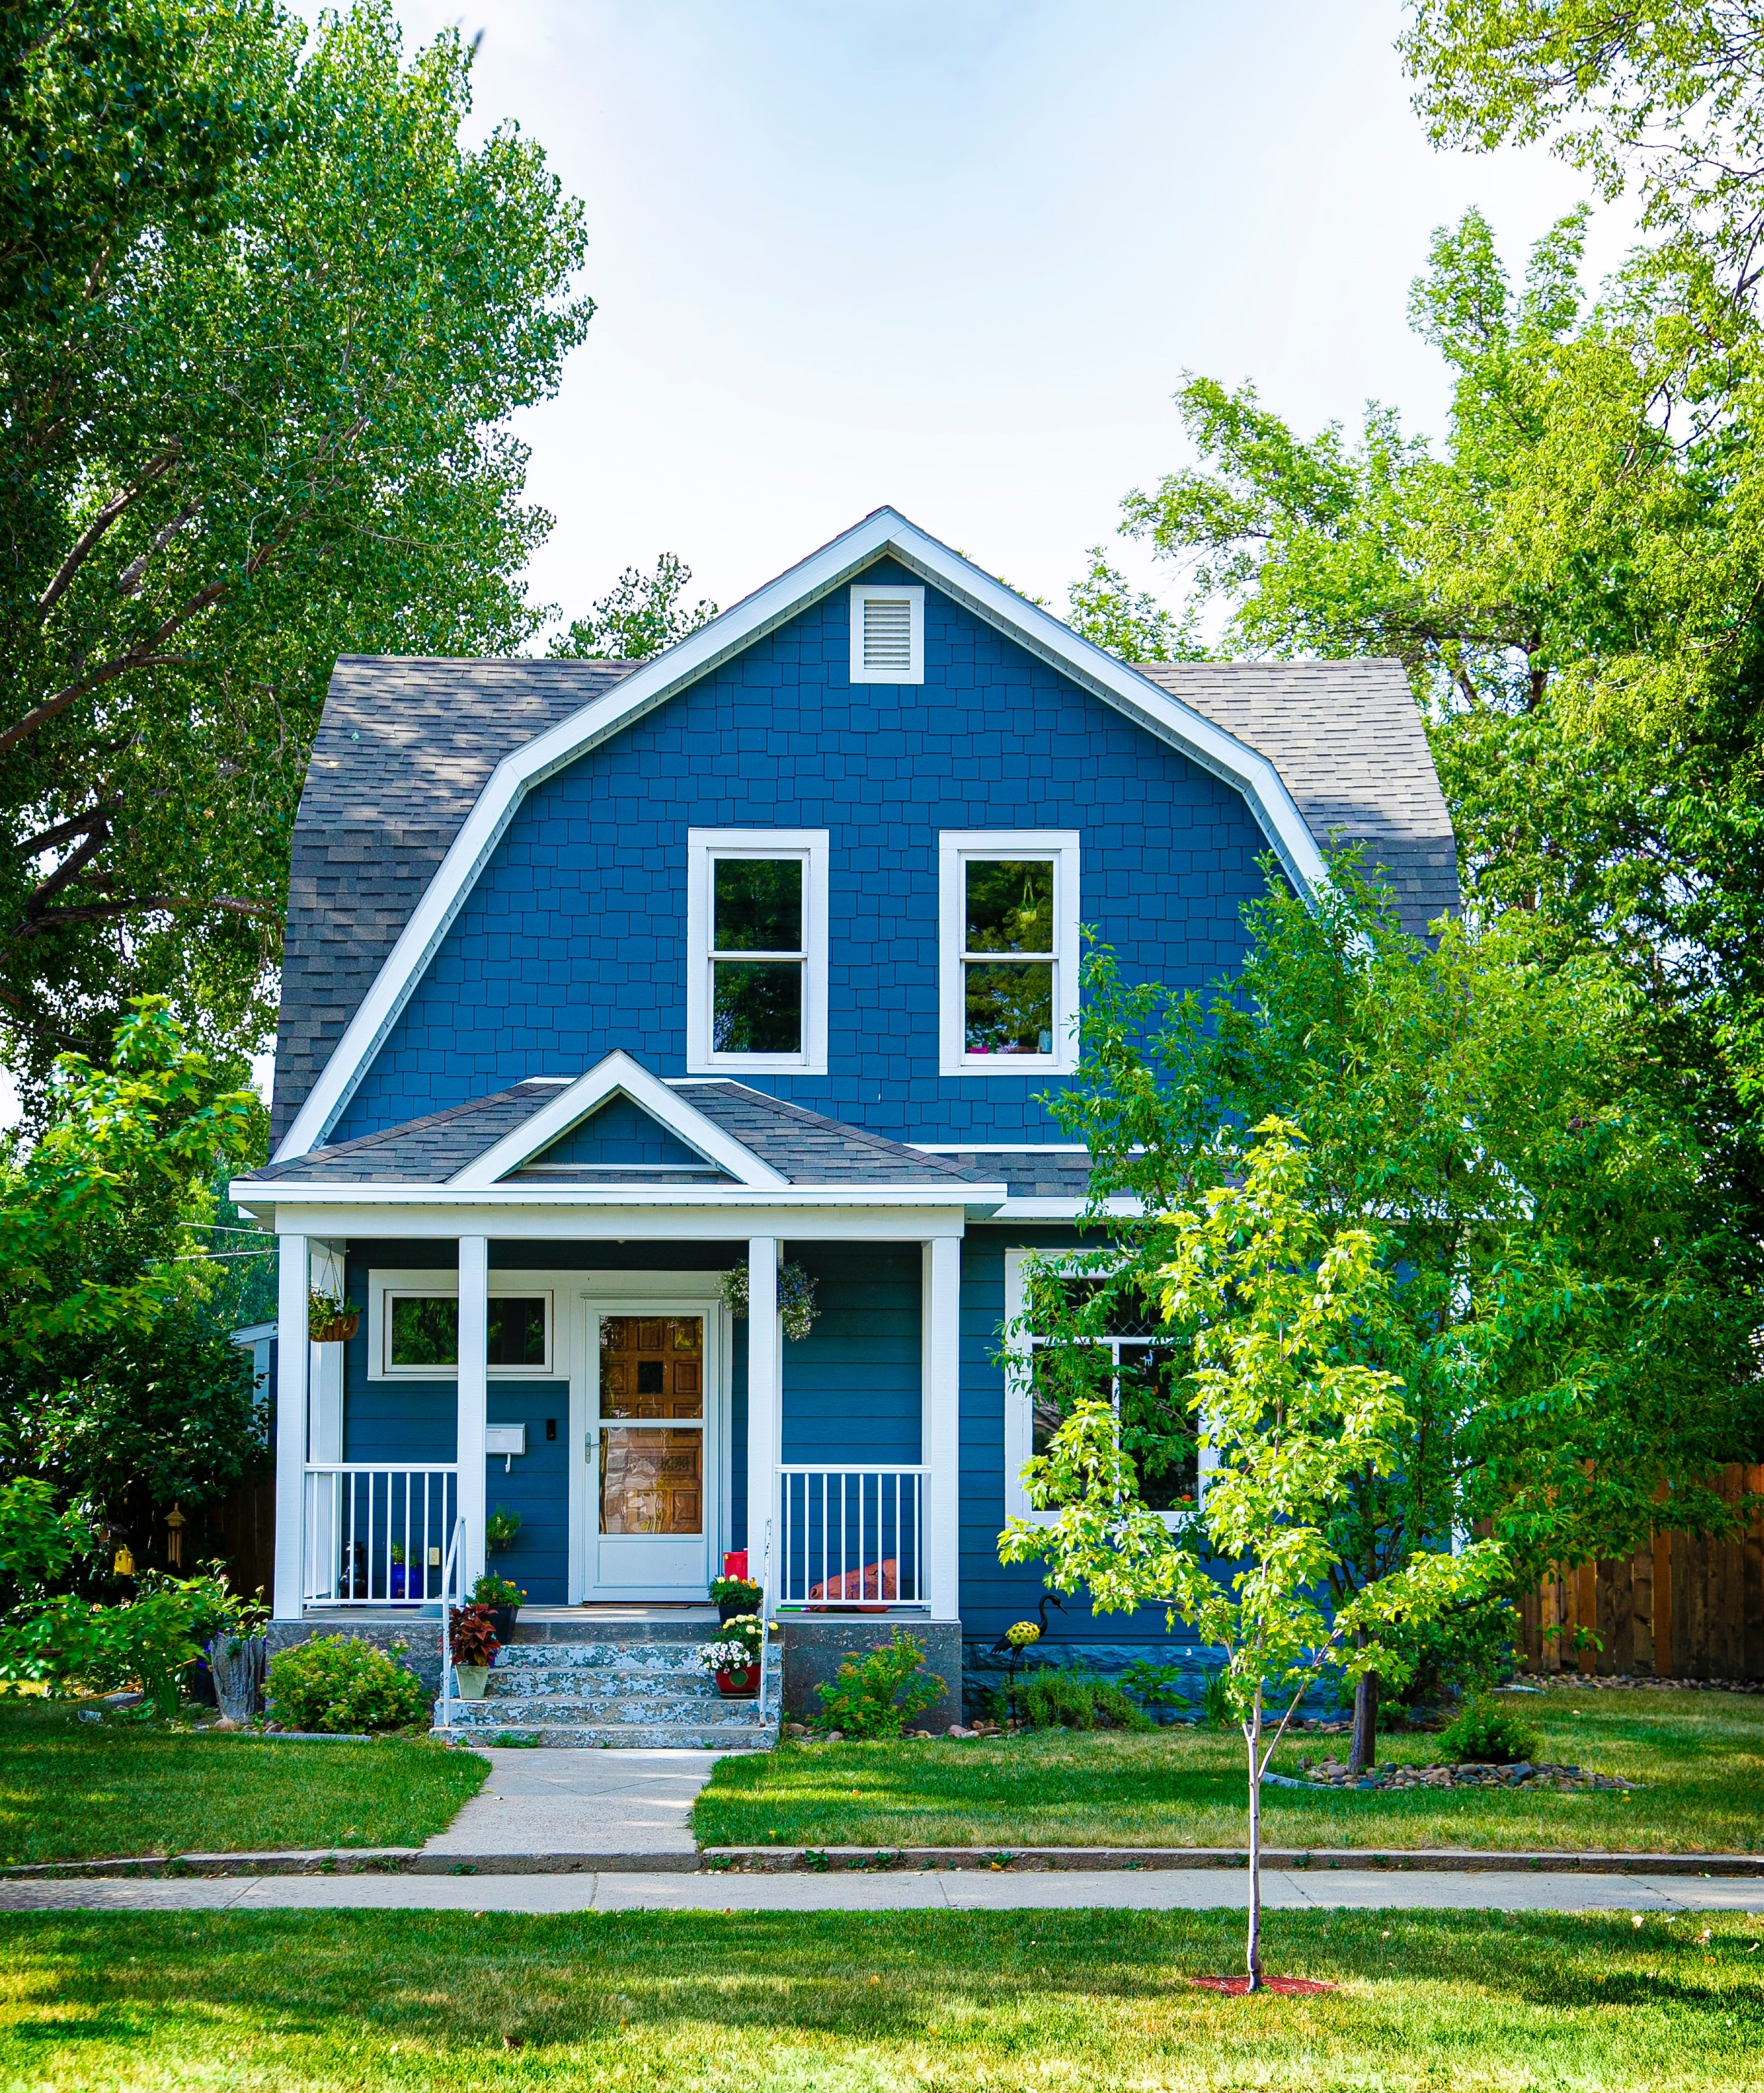 blue-house-landscaped-home-selling-tips-to-attract-home-buyers